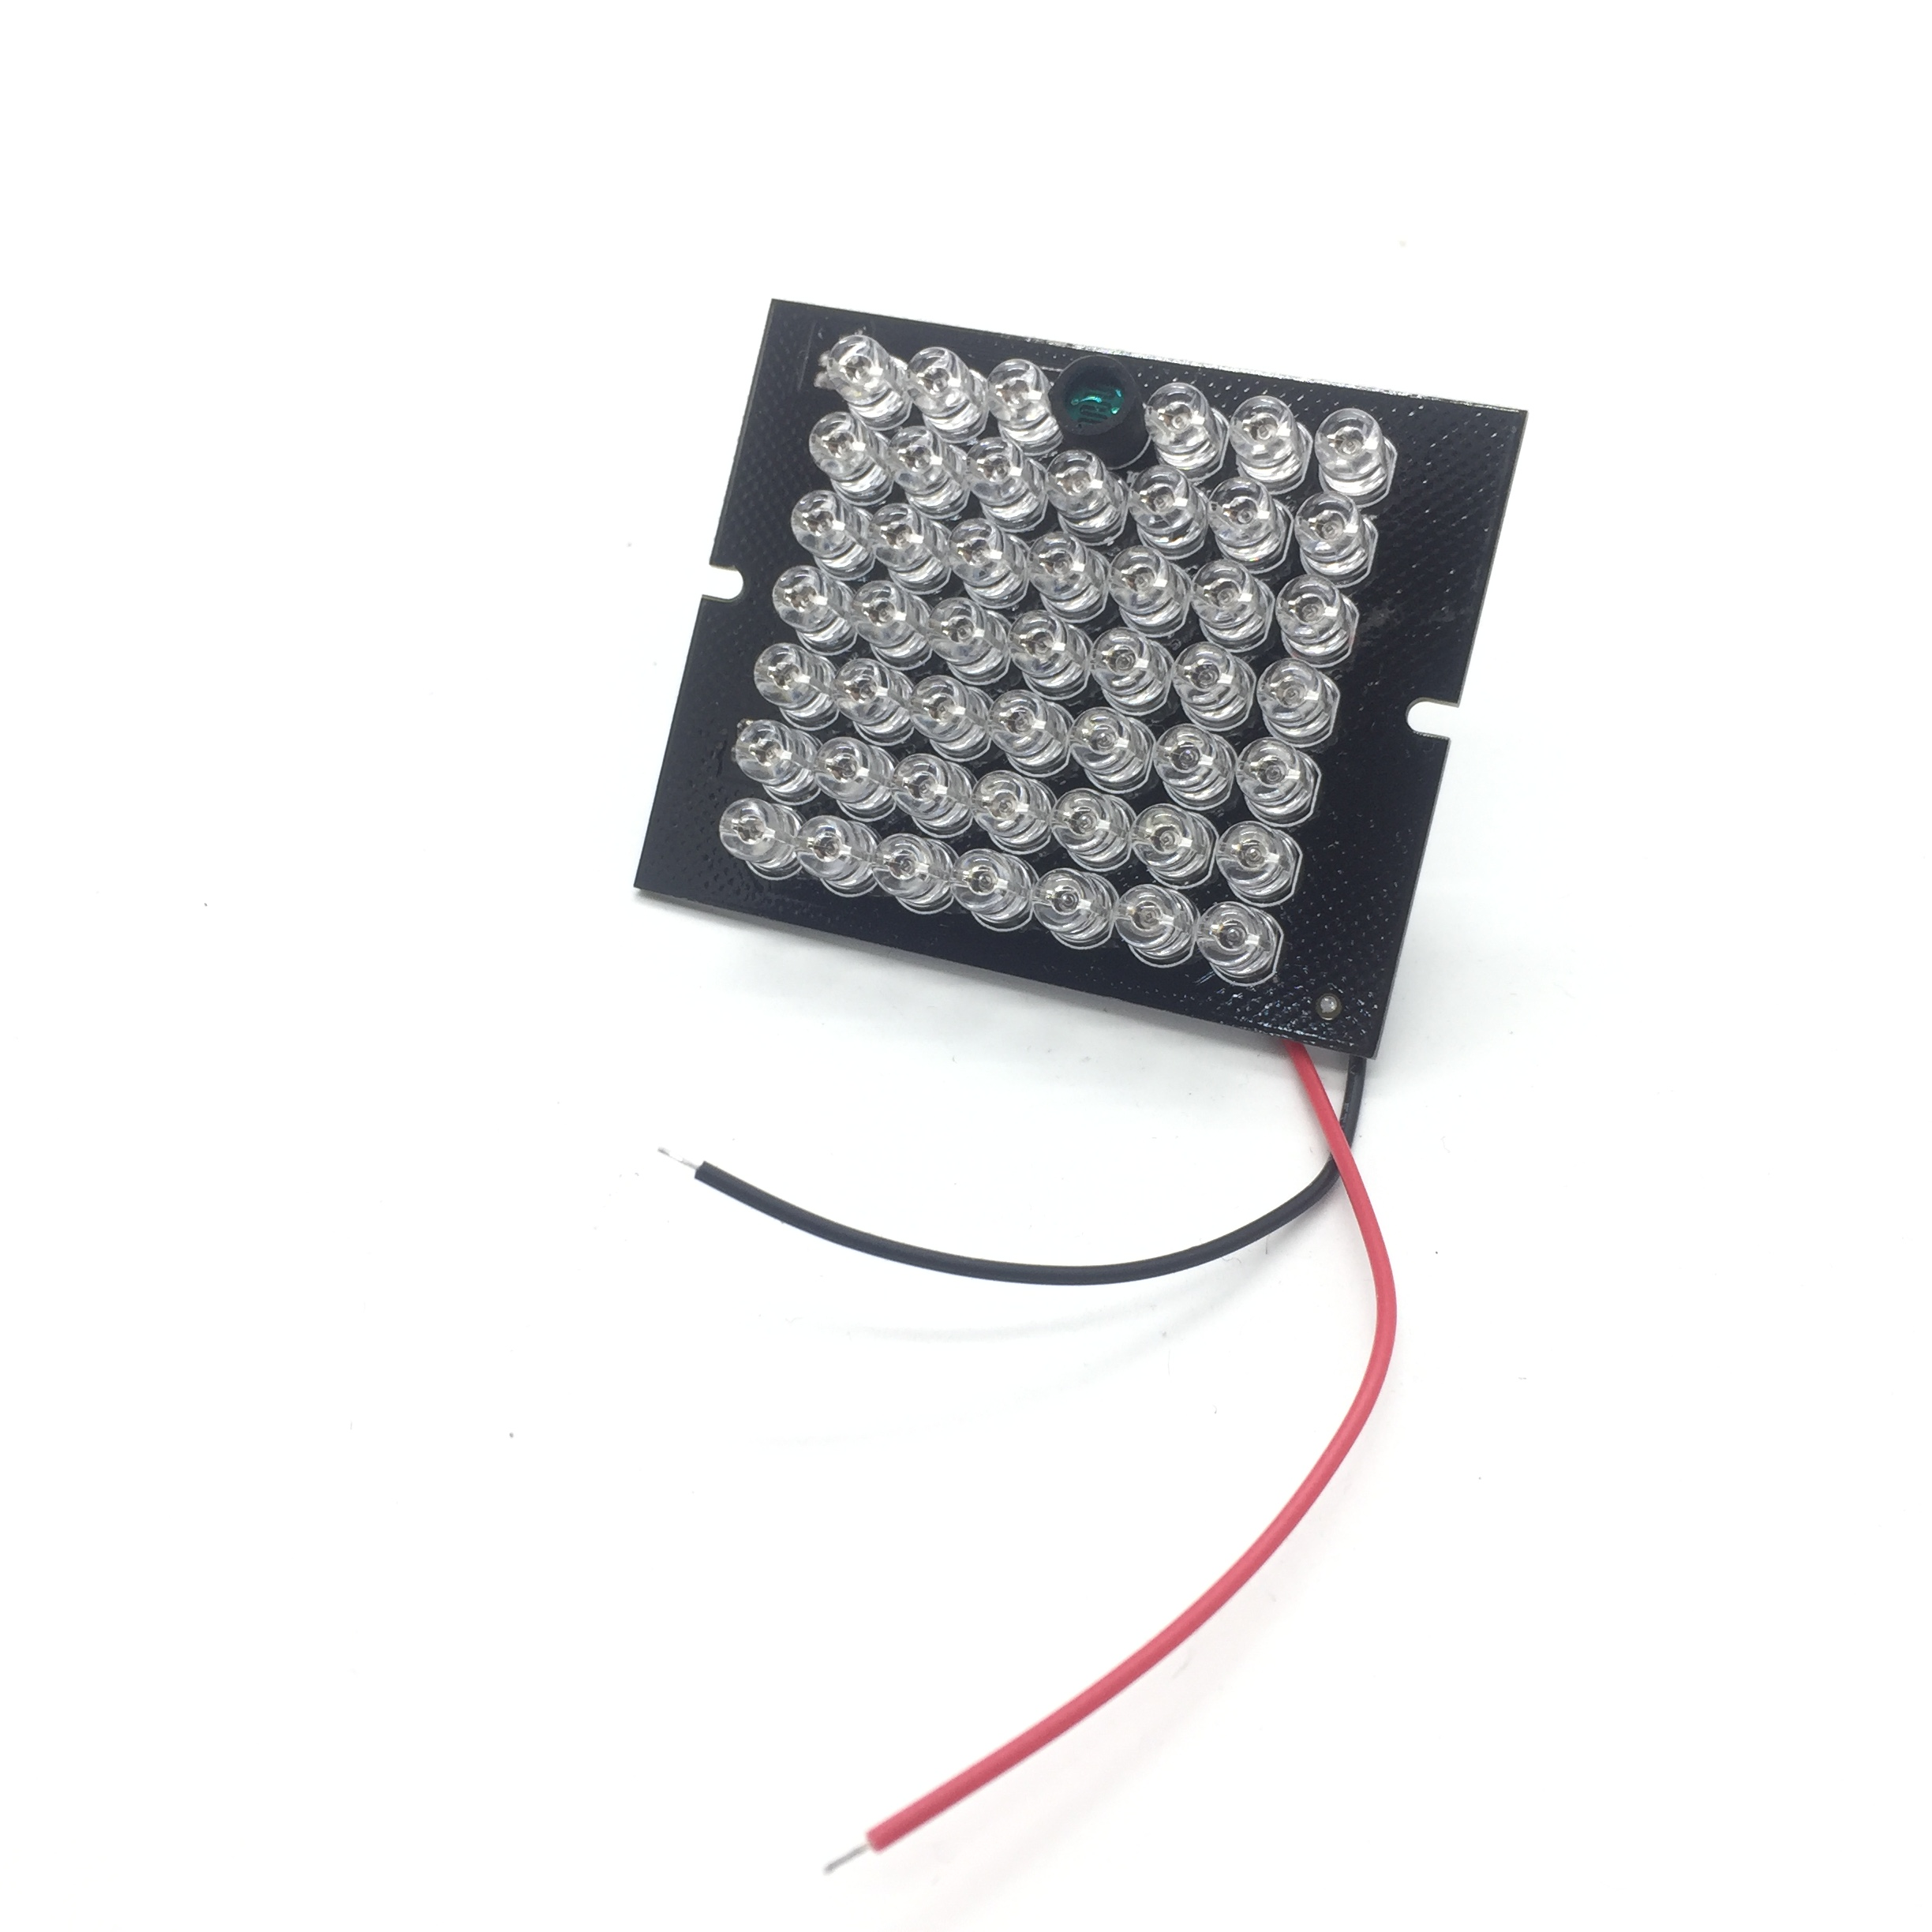 New Invisible Illuminator 940NM Infrared 60 Degree 48 LED IR Lights PCB For CCTV Security 940nm IR Camera DC12V